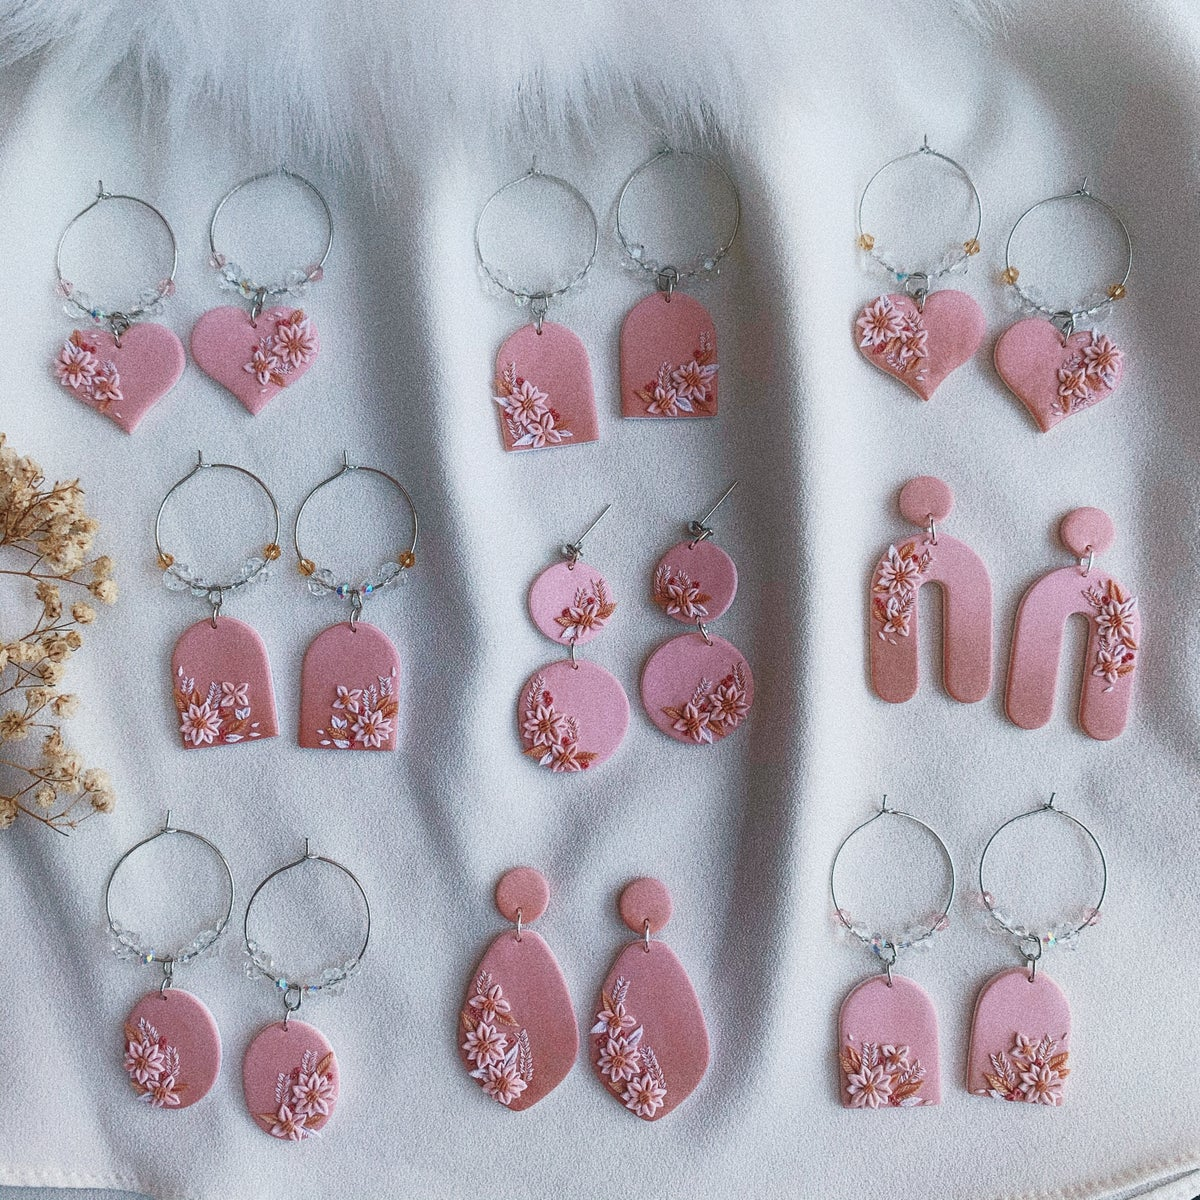 JUST PEACHY — JUICY ARCH DANGLES